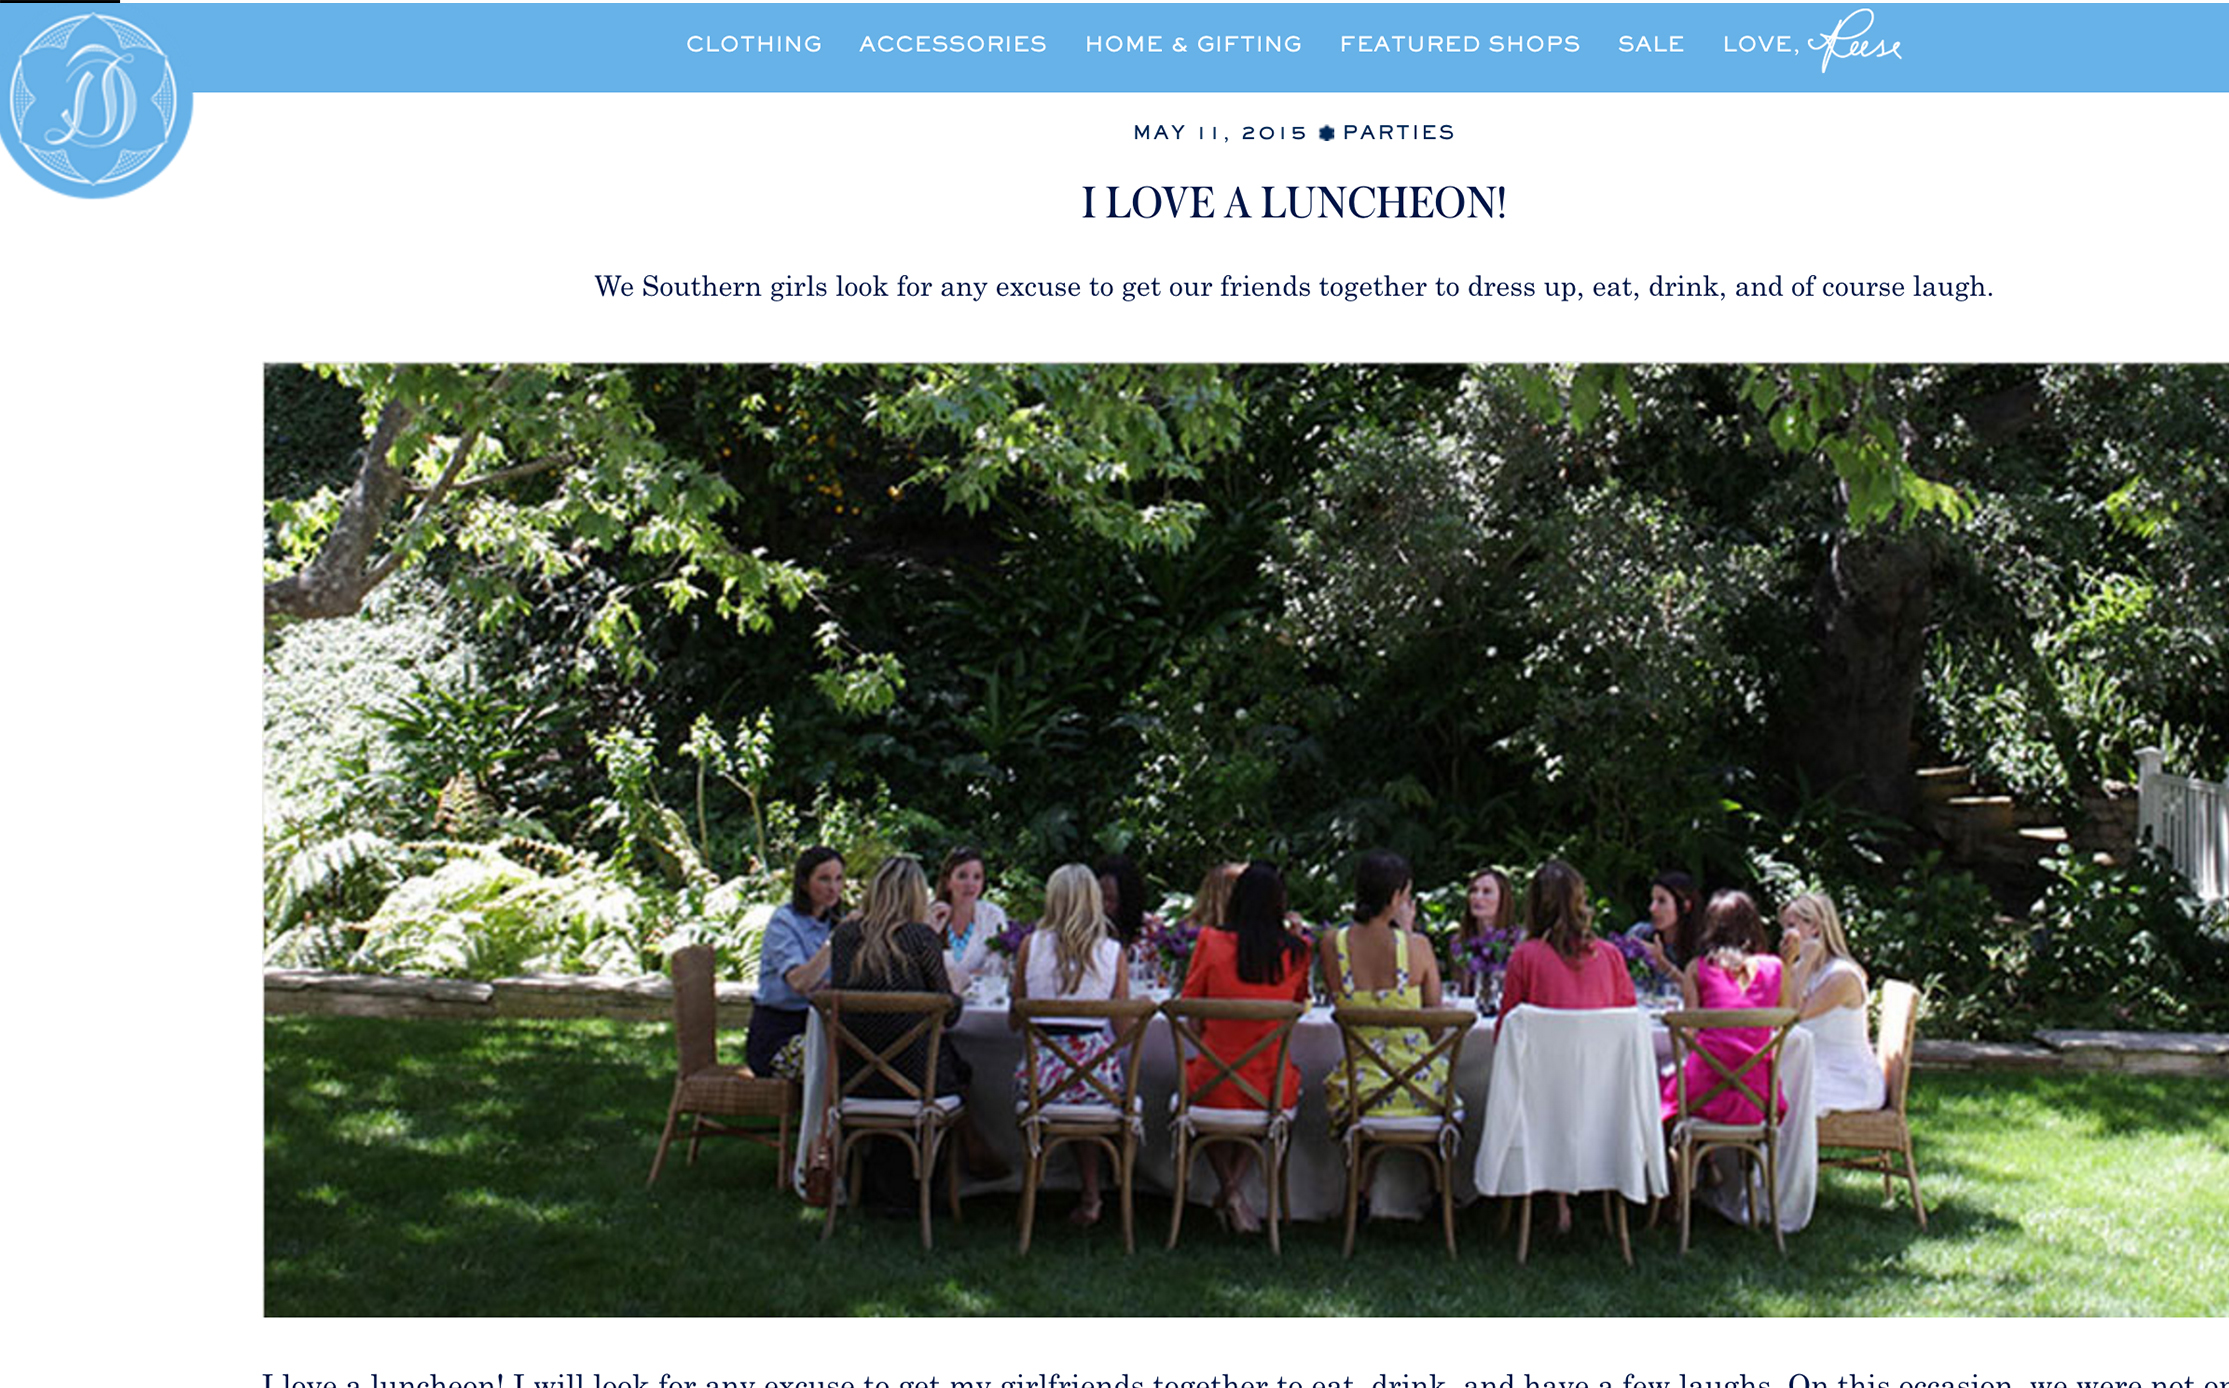 DRAPER JAMES BLOG // A Southern Luncheon featuring annie campbell